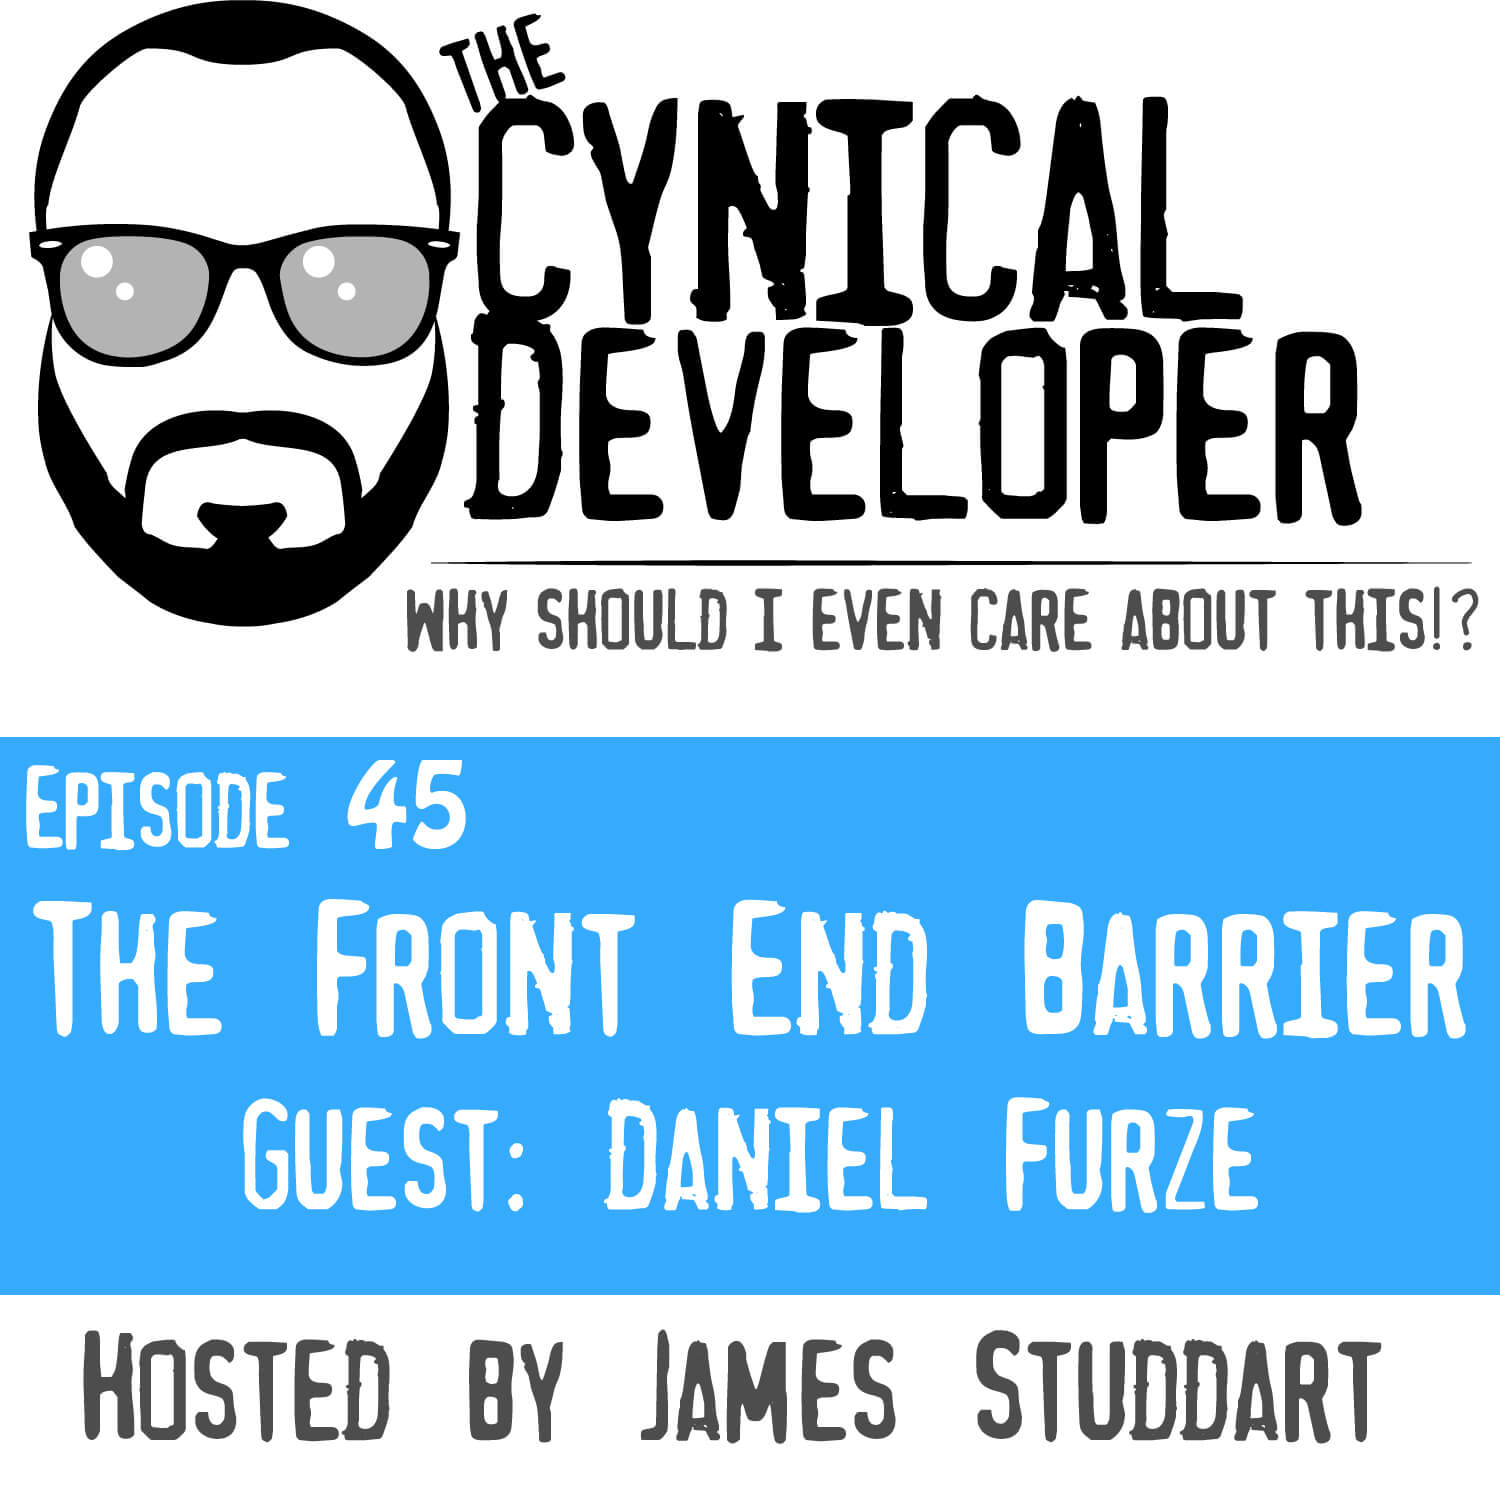 Episode 45 - The front end barrier